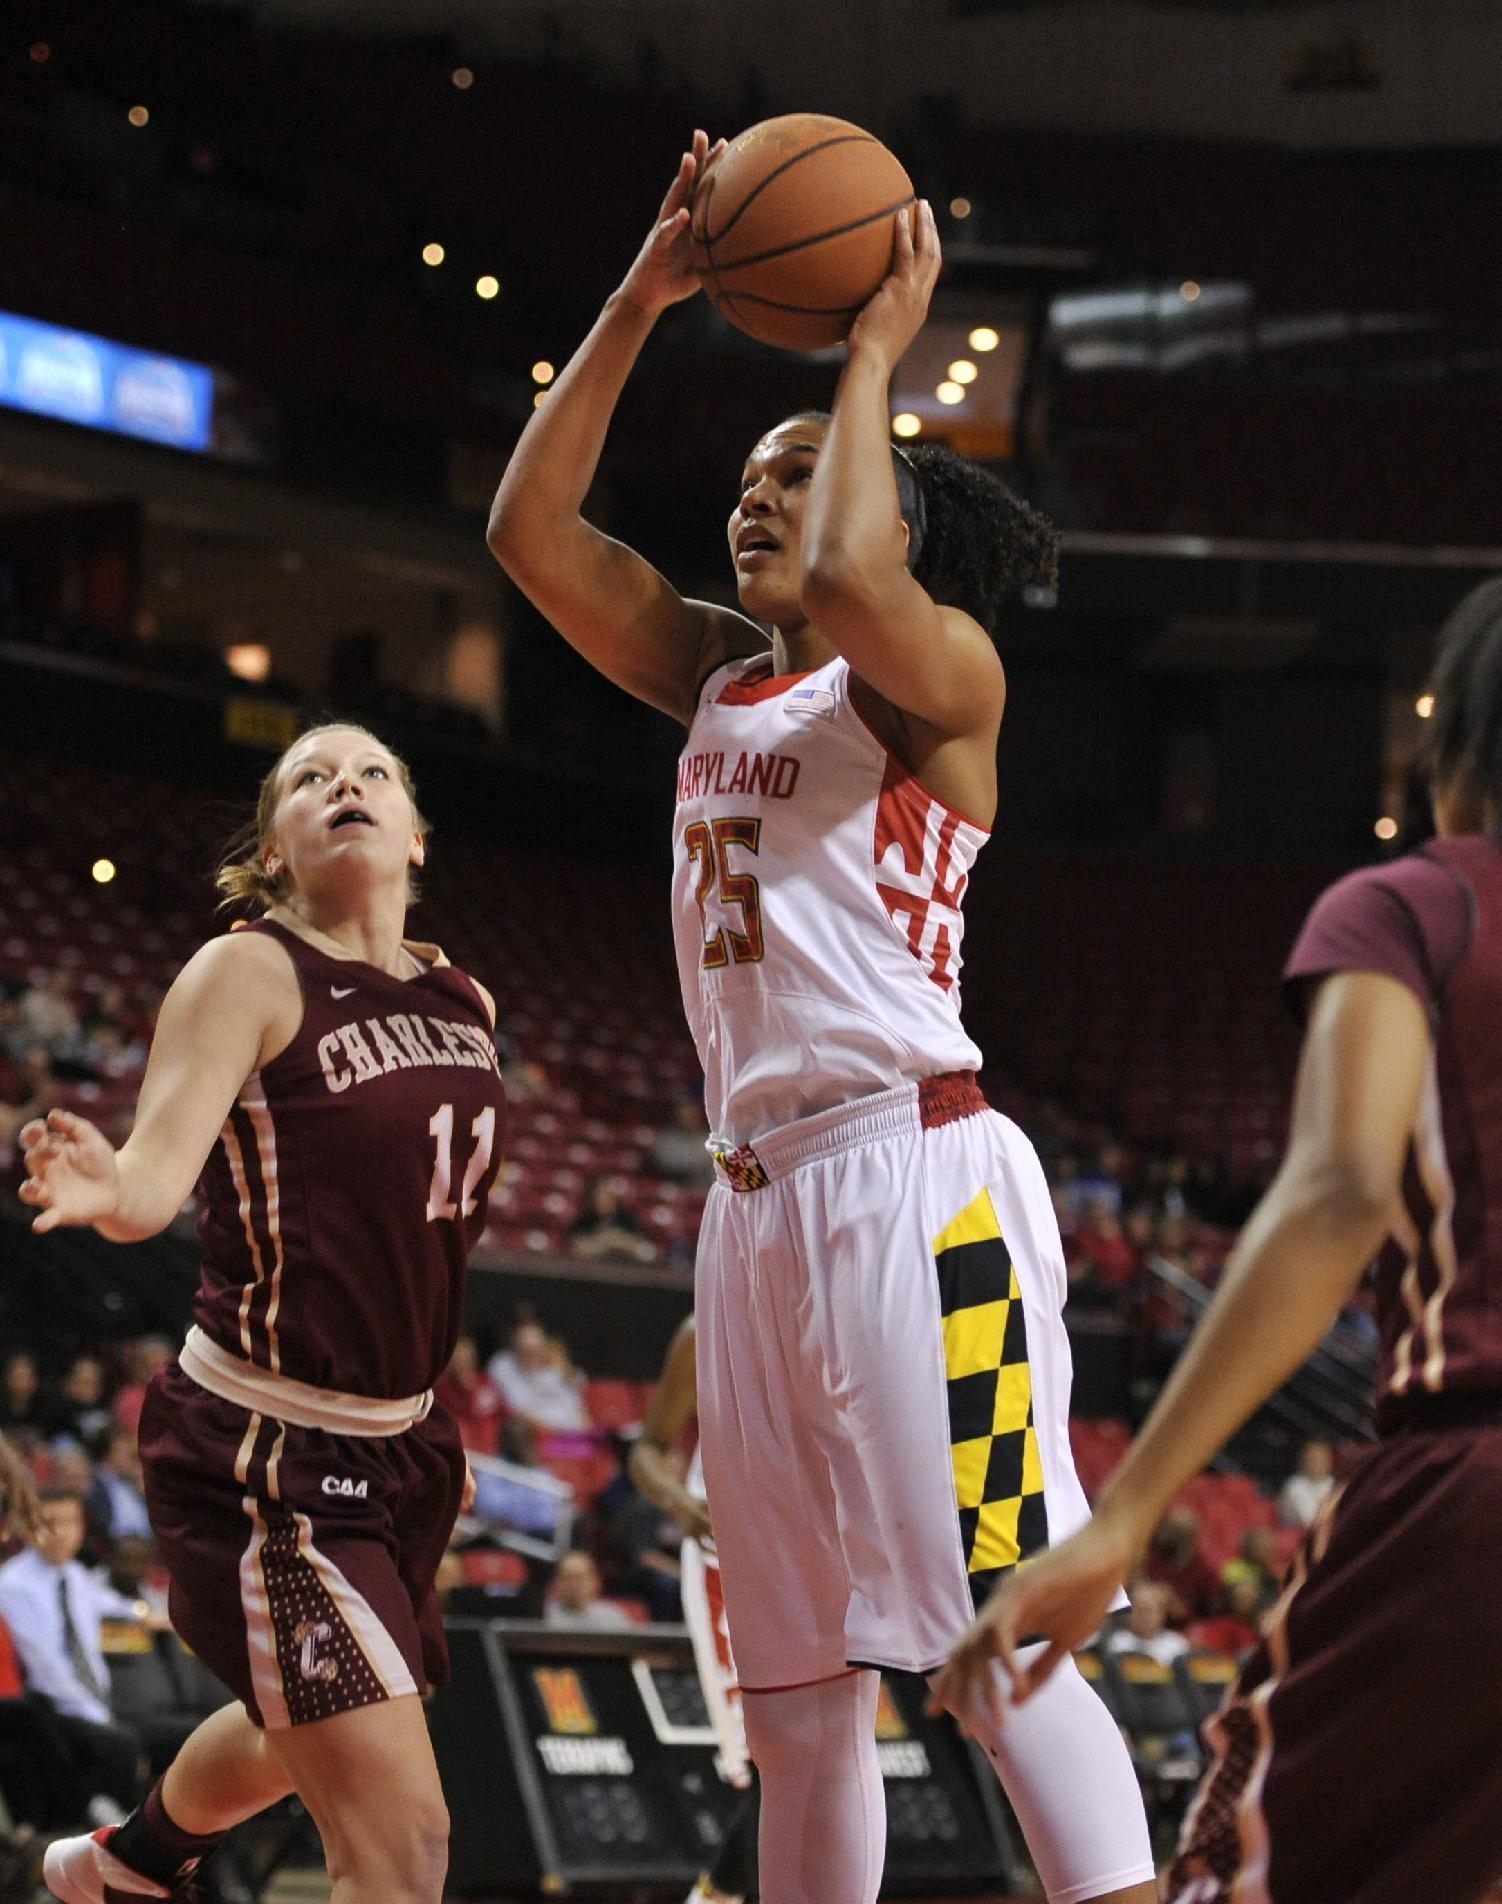 Maryland's Alyssa Thomas, center, shoots as Charleston's Christy Hewatt, left, defends in the first half of an NCAA basketball game Sunday, Dec. 29, 2013, in College Park, Md